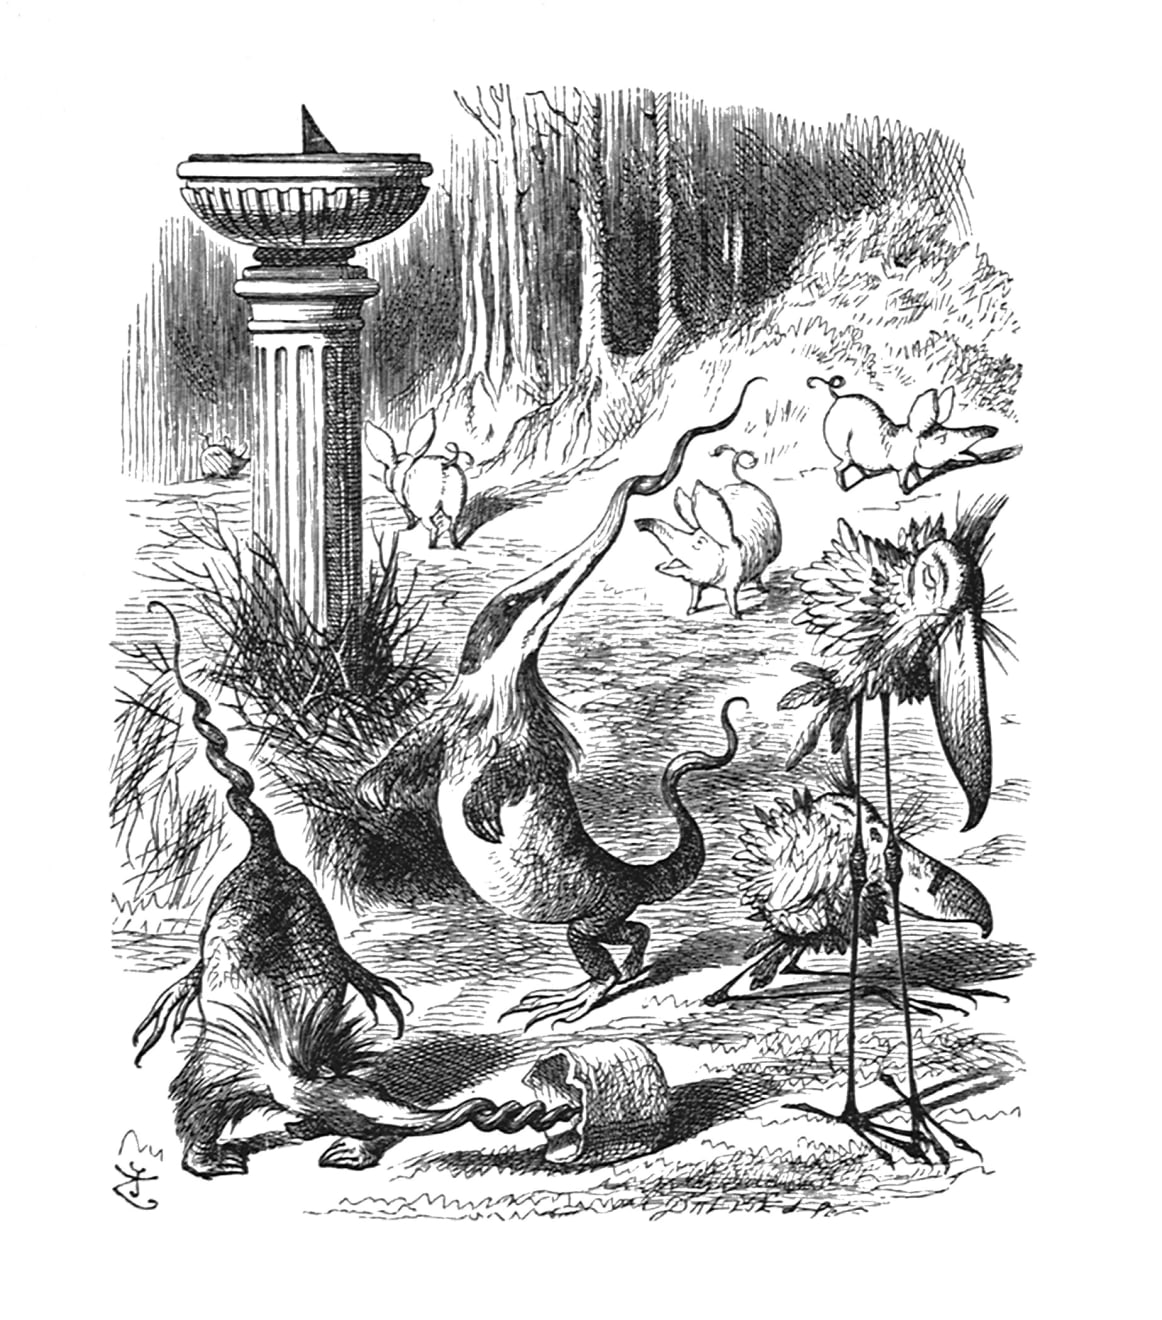 Summer Auction 2020, LOT 135 - John Tenniel - 'Twas brillig, and the slithy toves Did gyre and gimble in...